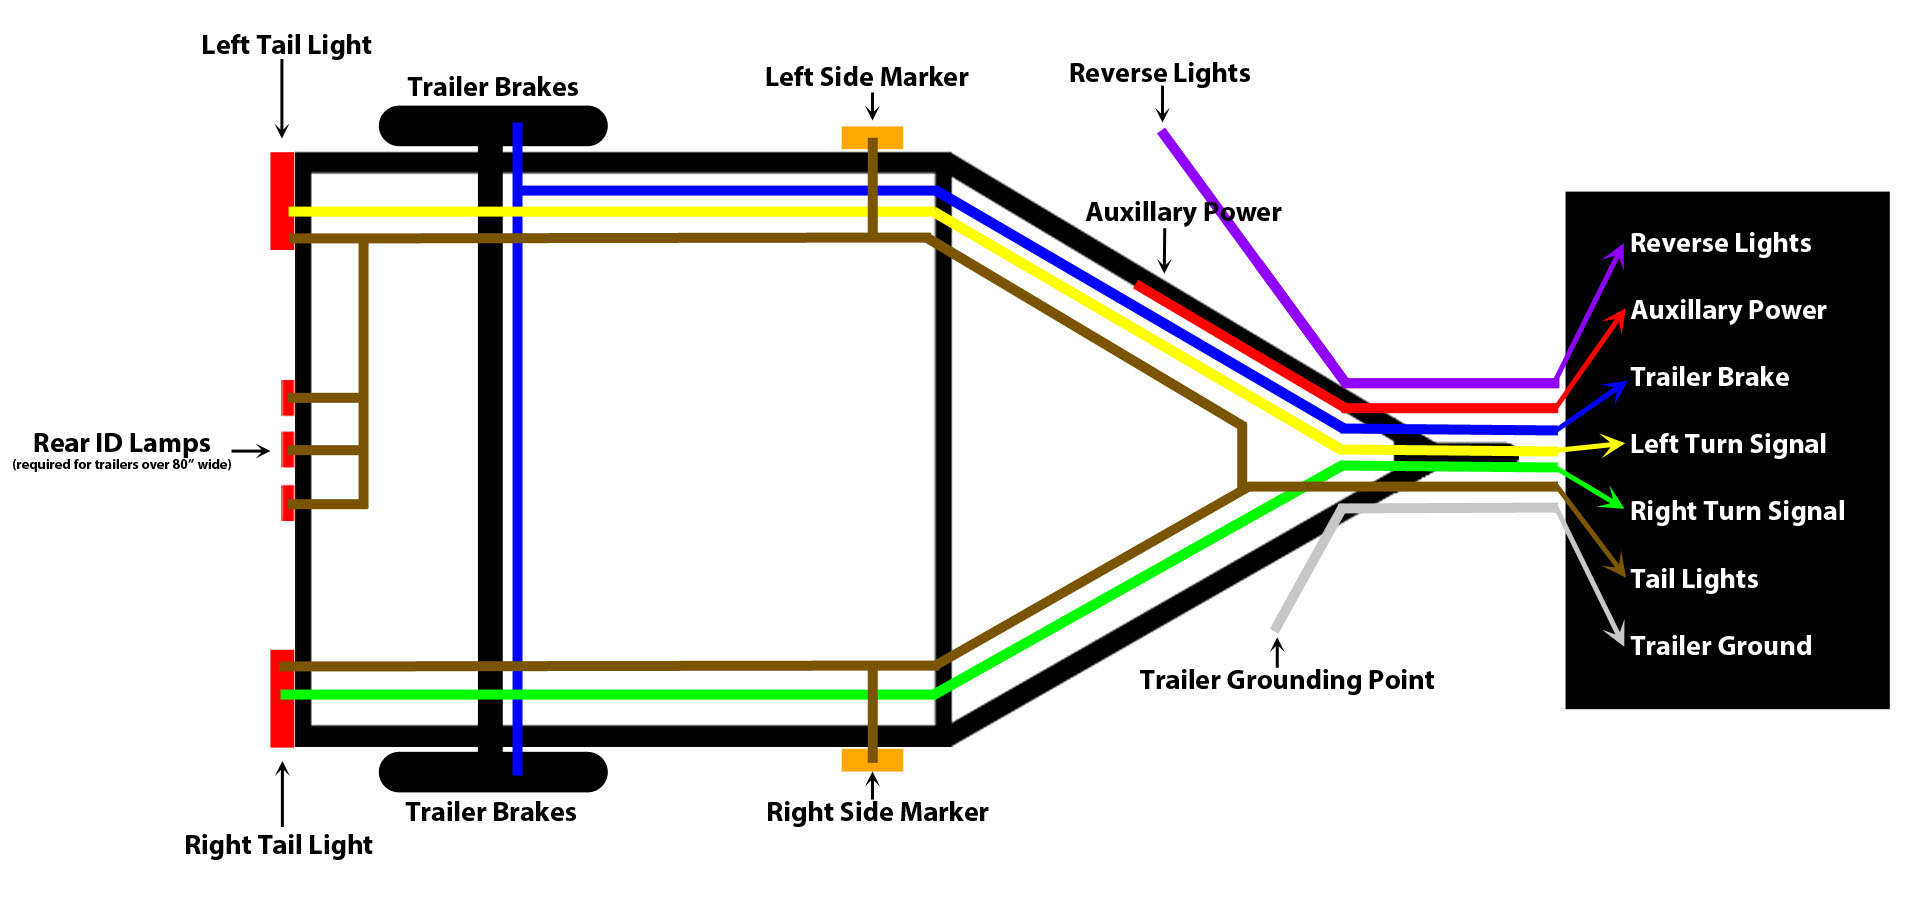 trailer wiring diagram?t=1419082606 trailer wiring guide wiring diagram trailer lights at panicattacktreatment.co